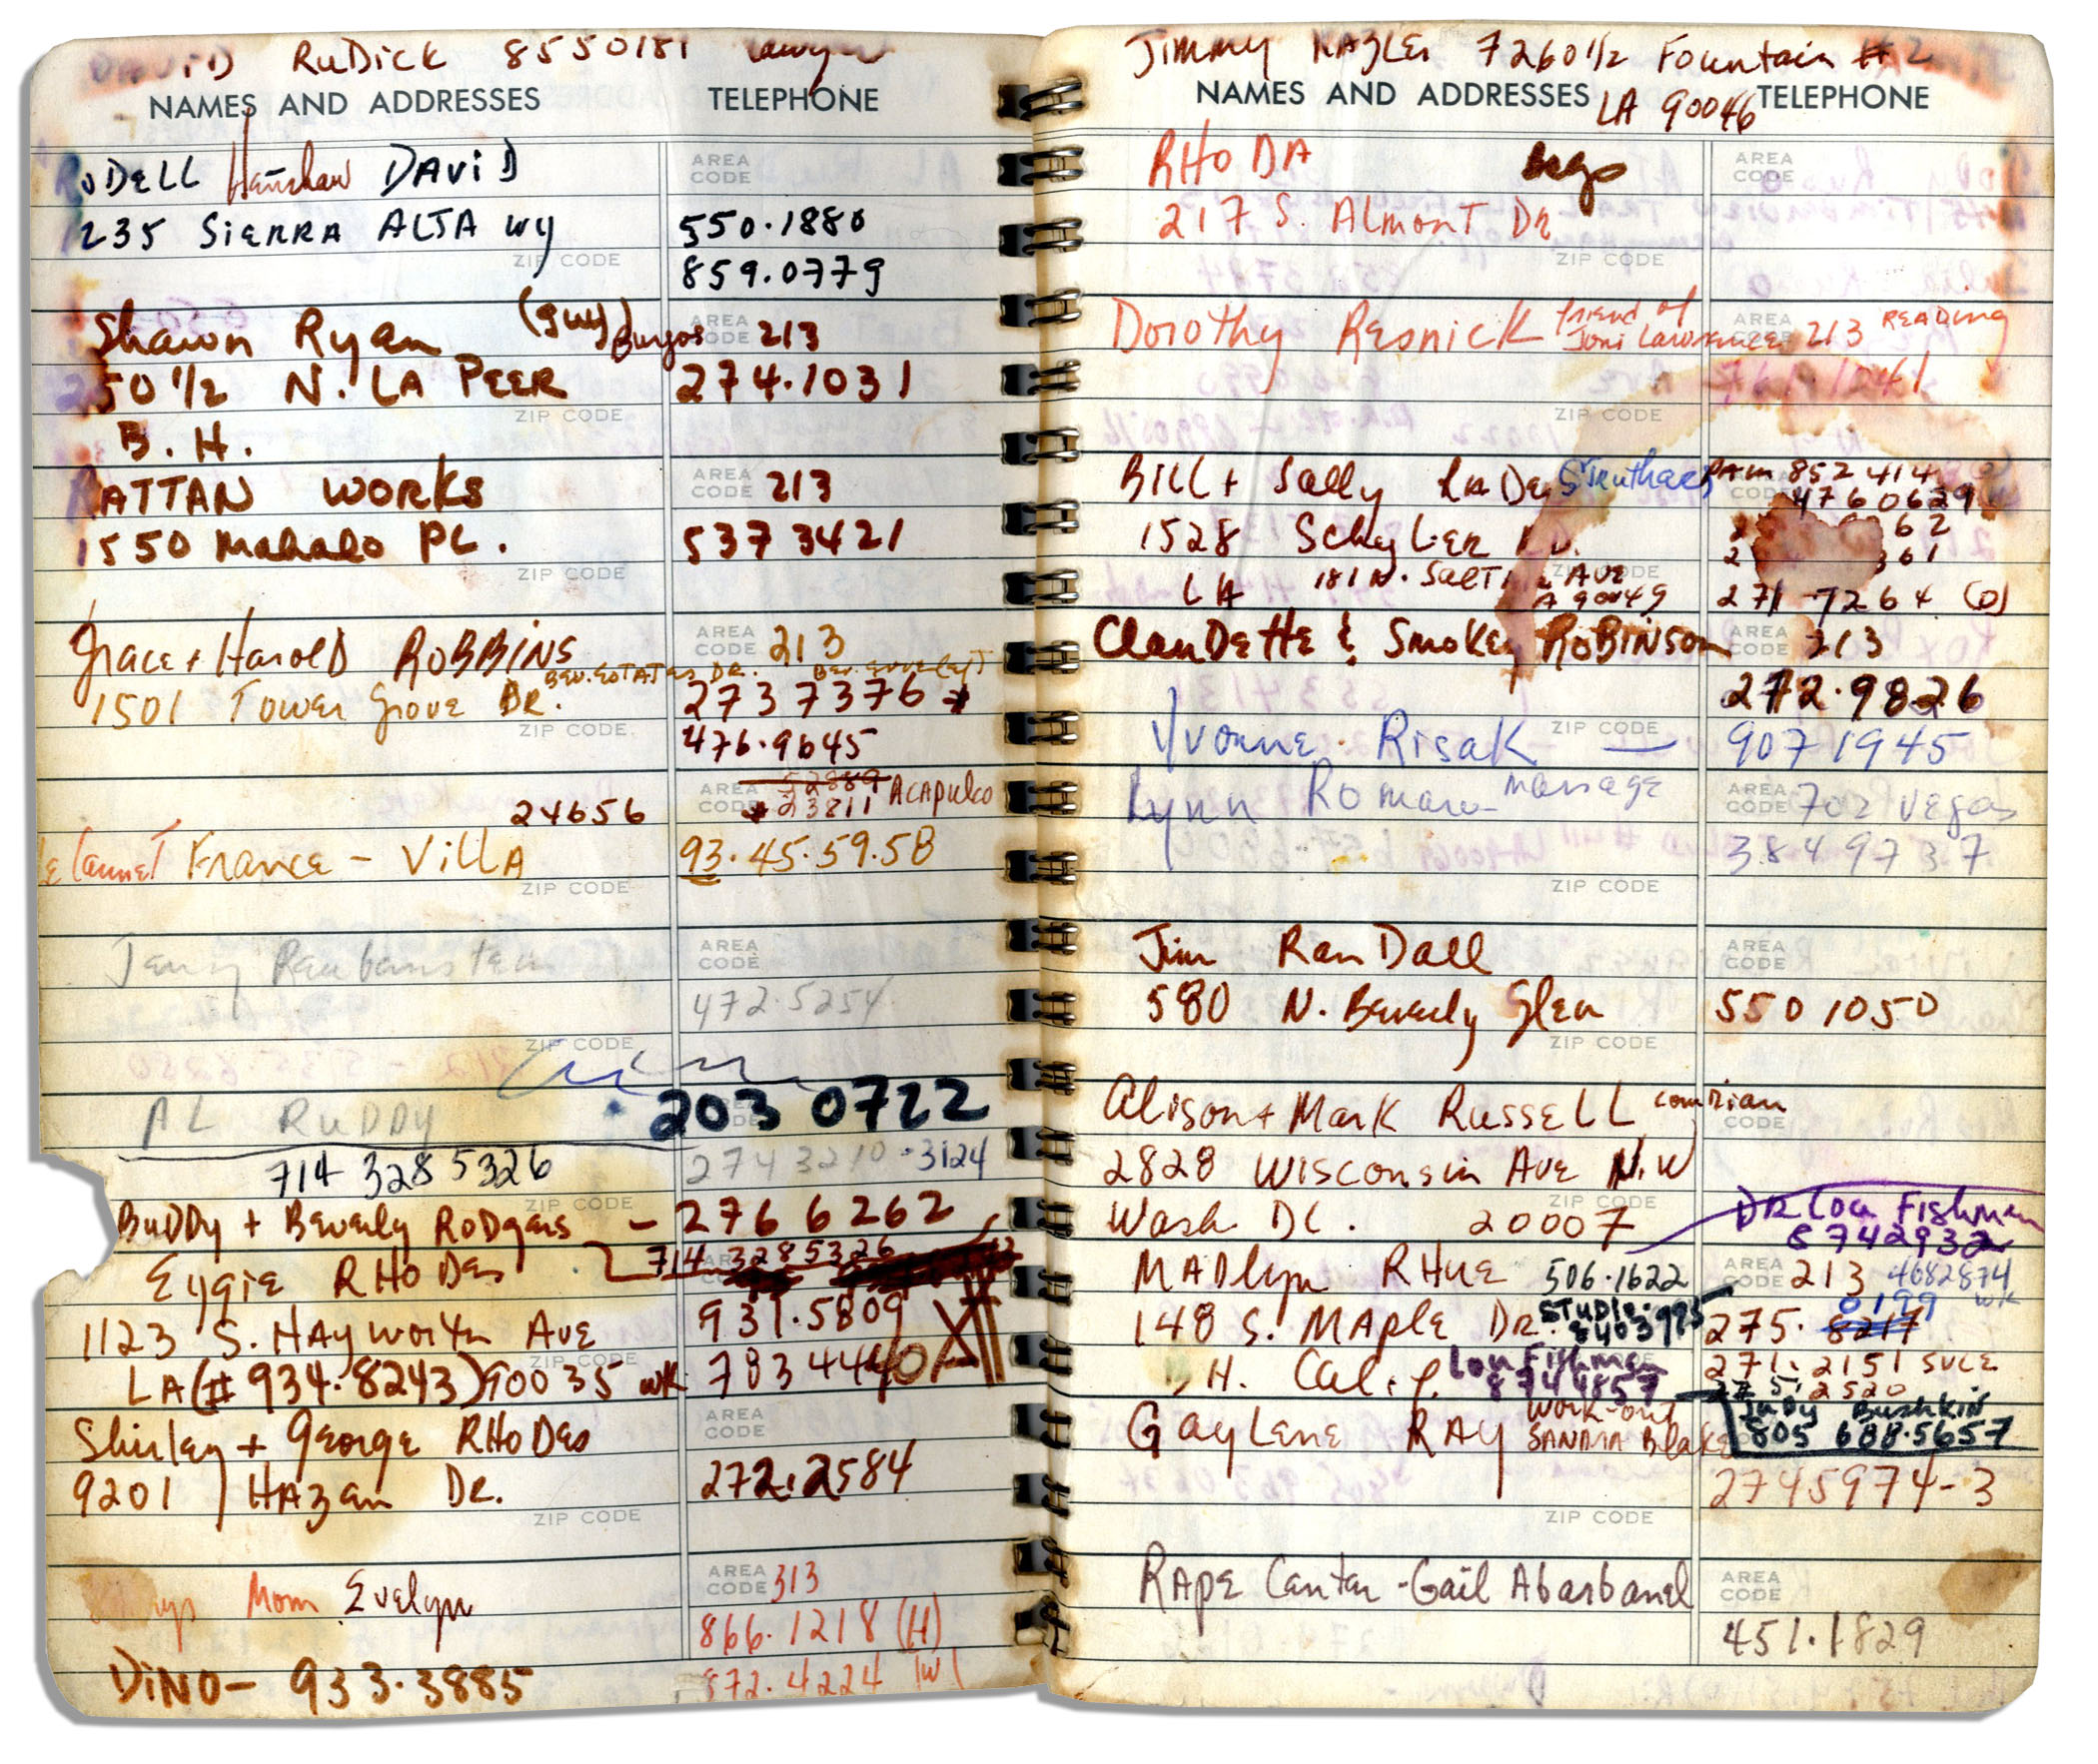 lot detail sammy davis jr s personal address book containing the